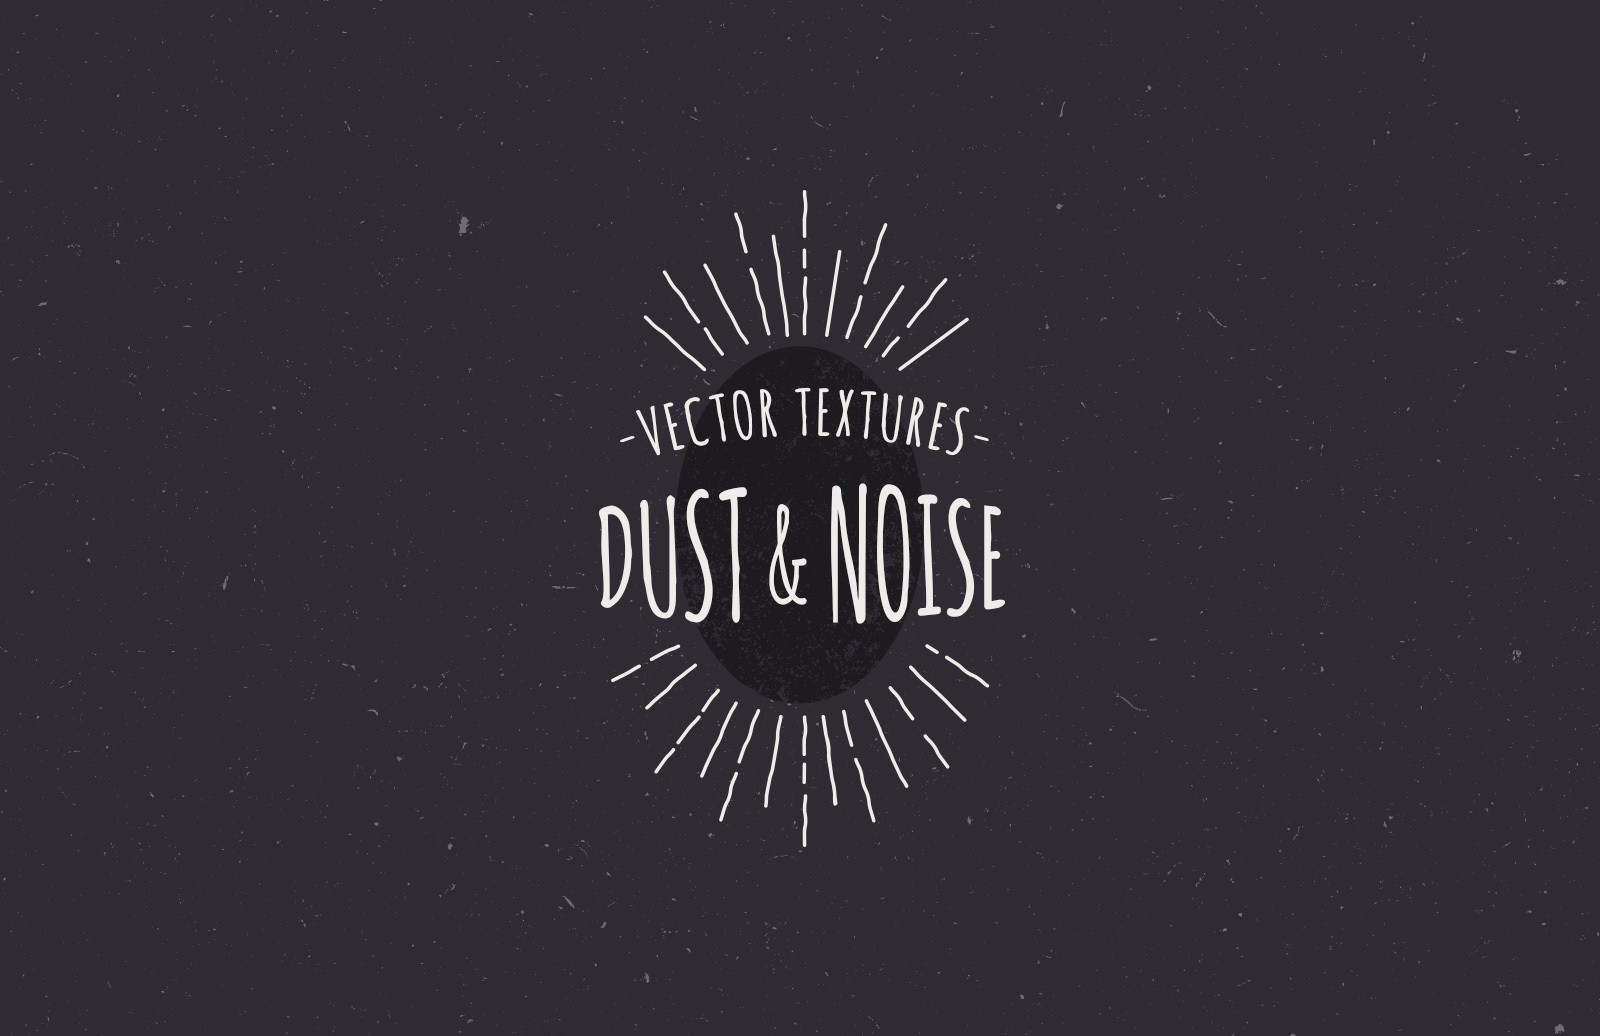 Vector Textures - Dust and Noise